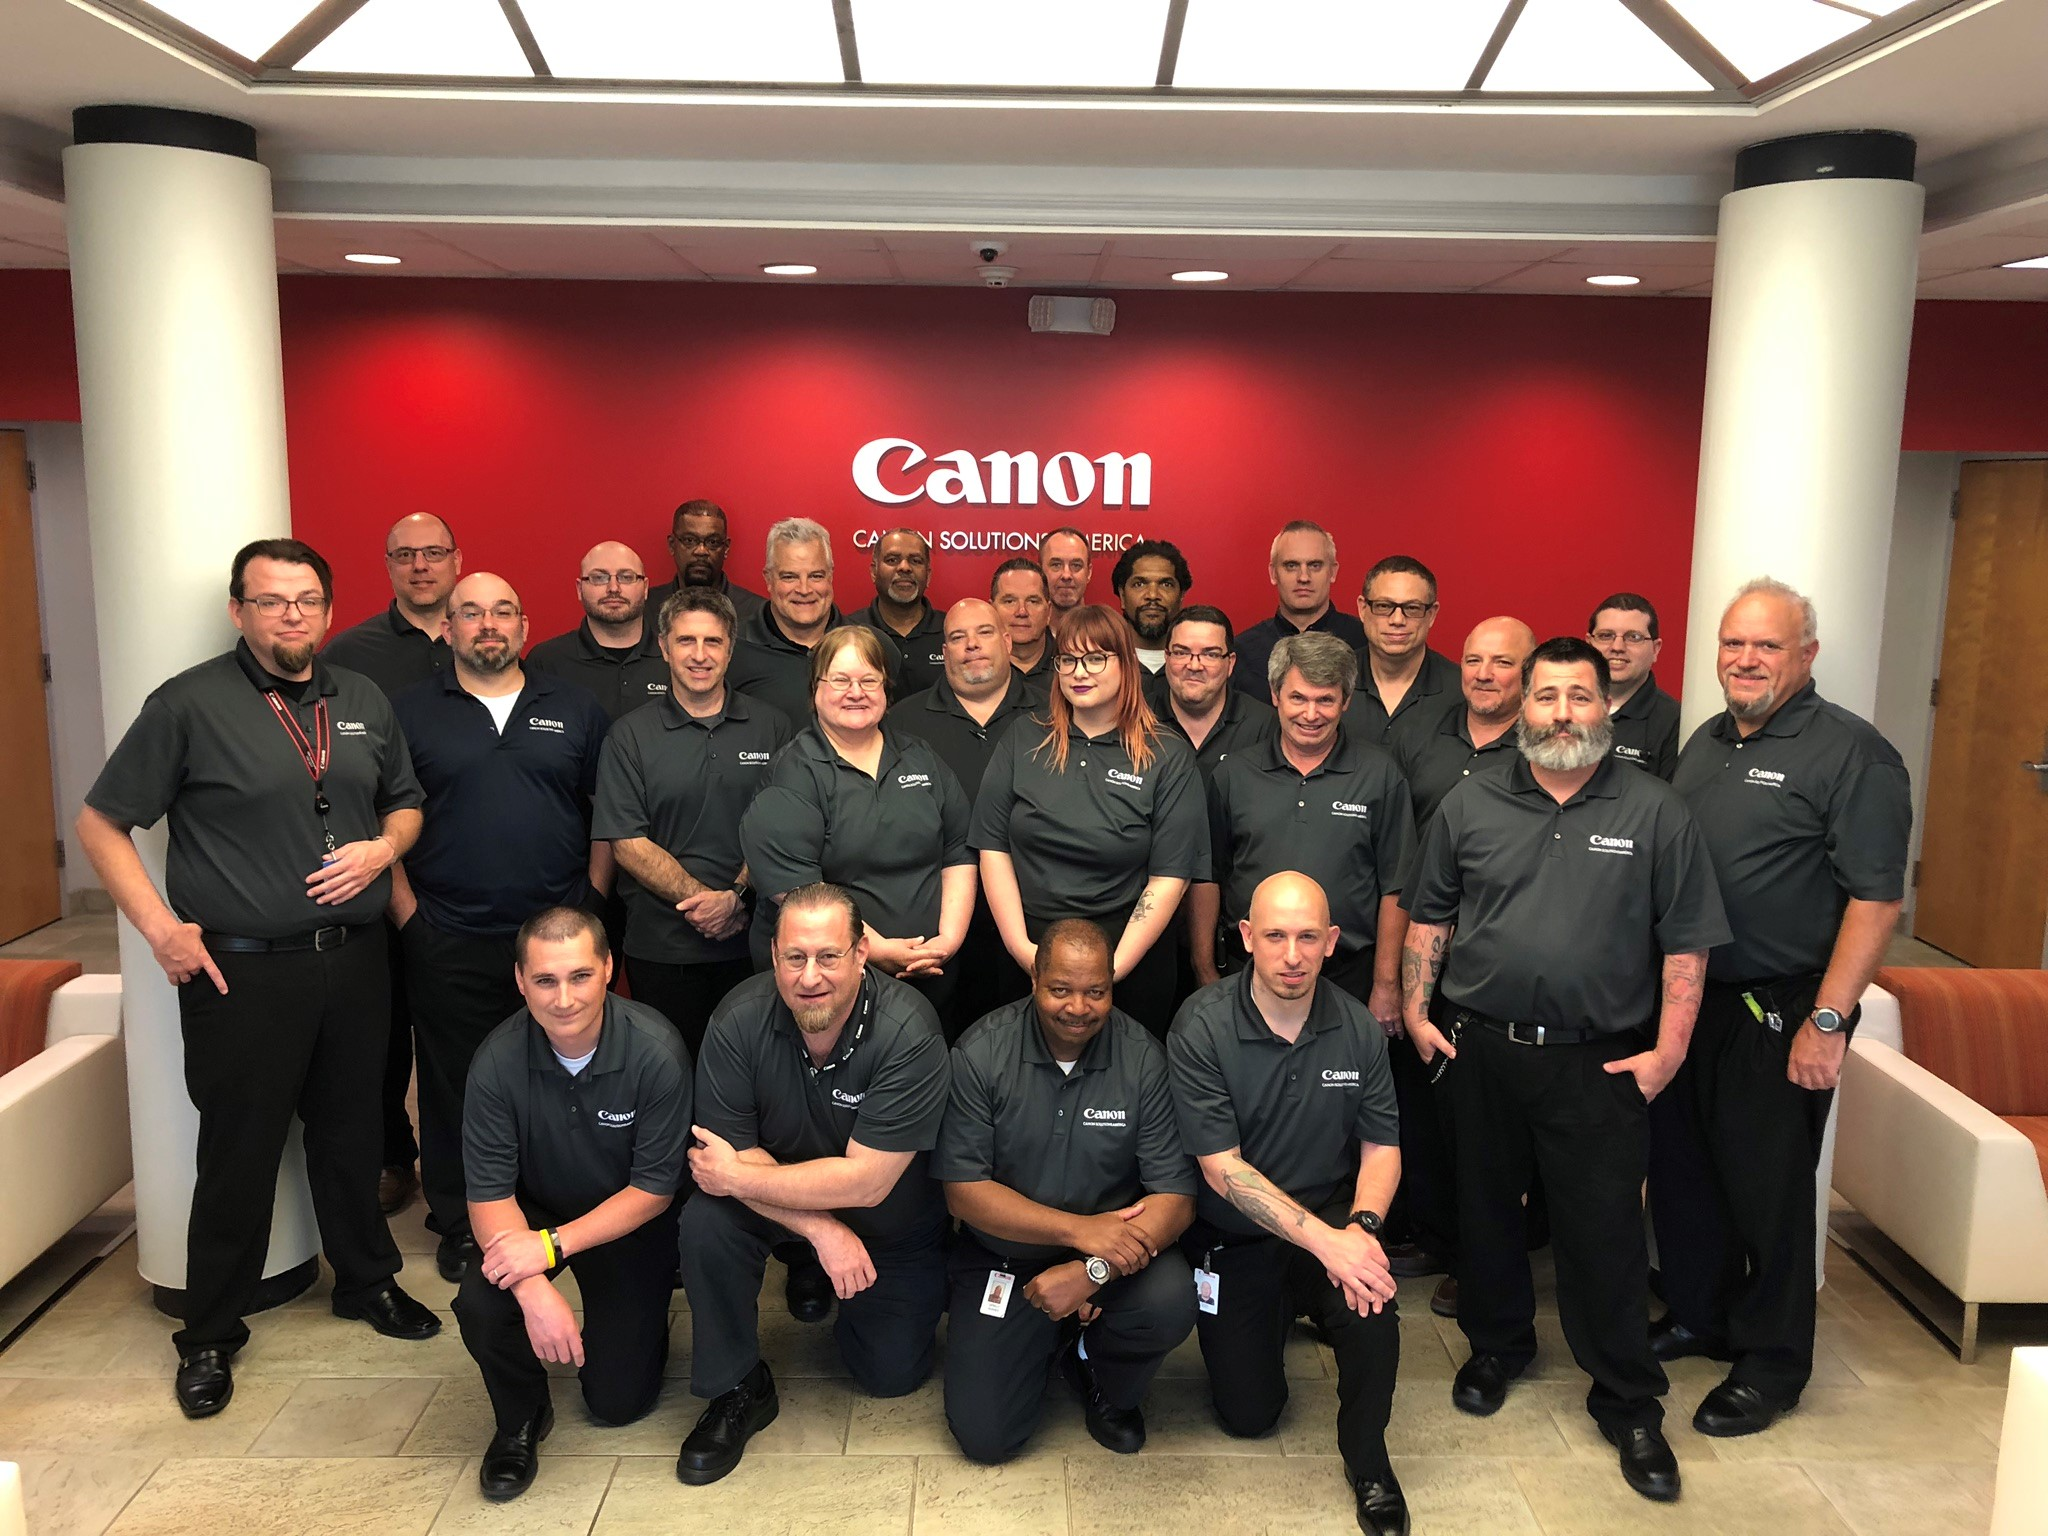 Canon Solutions America Professional Services Team in Burlington, NJ